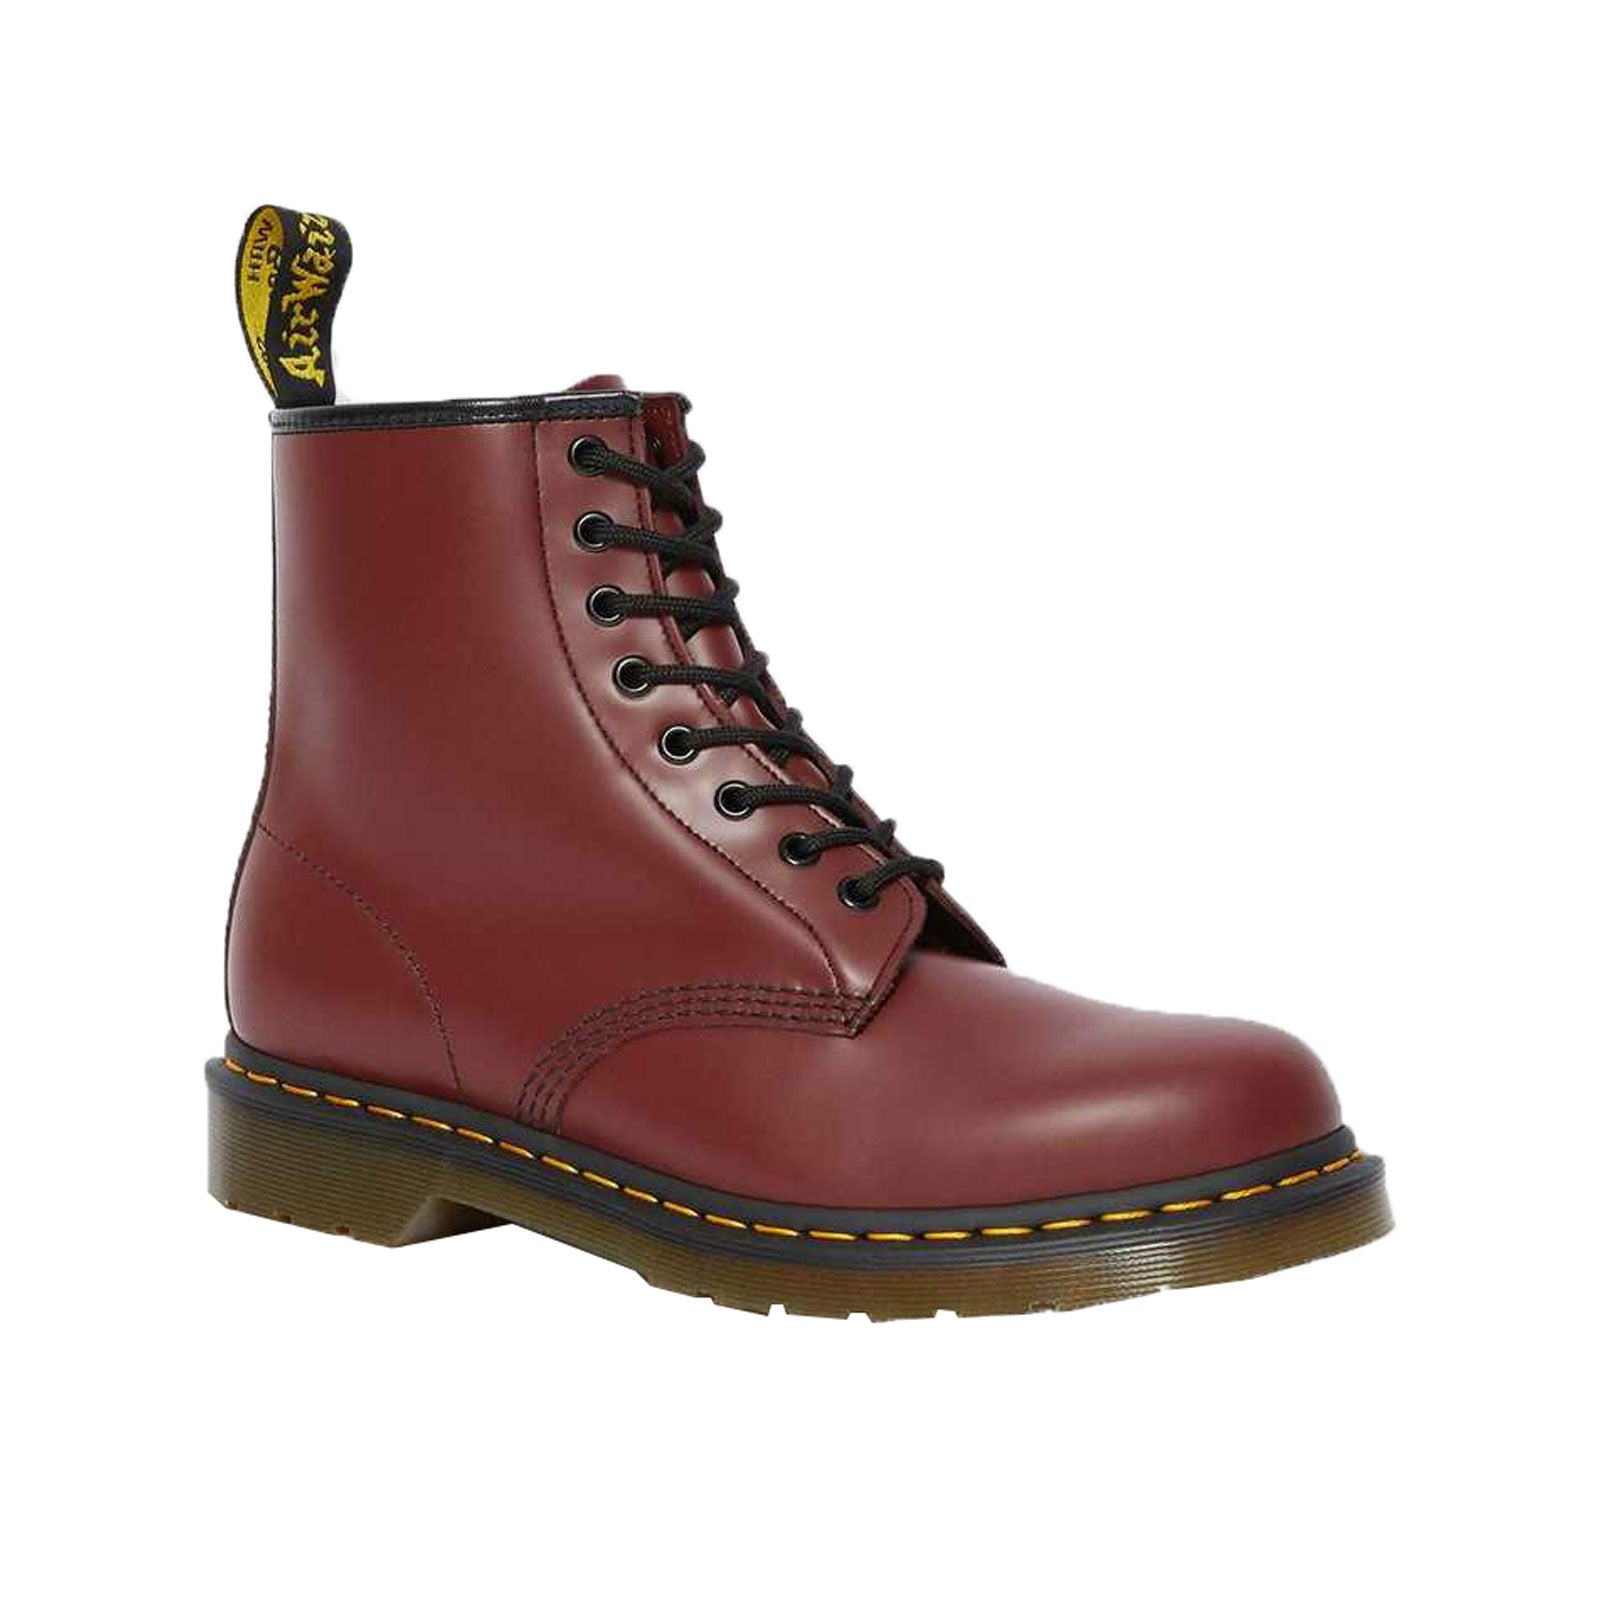 DR. MARTENS 1460 8 EYE 11821600 (CHERRY RED SMOOTH)